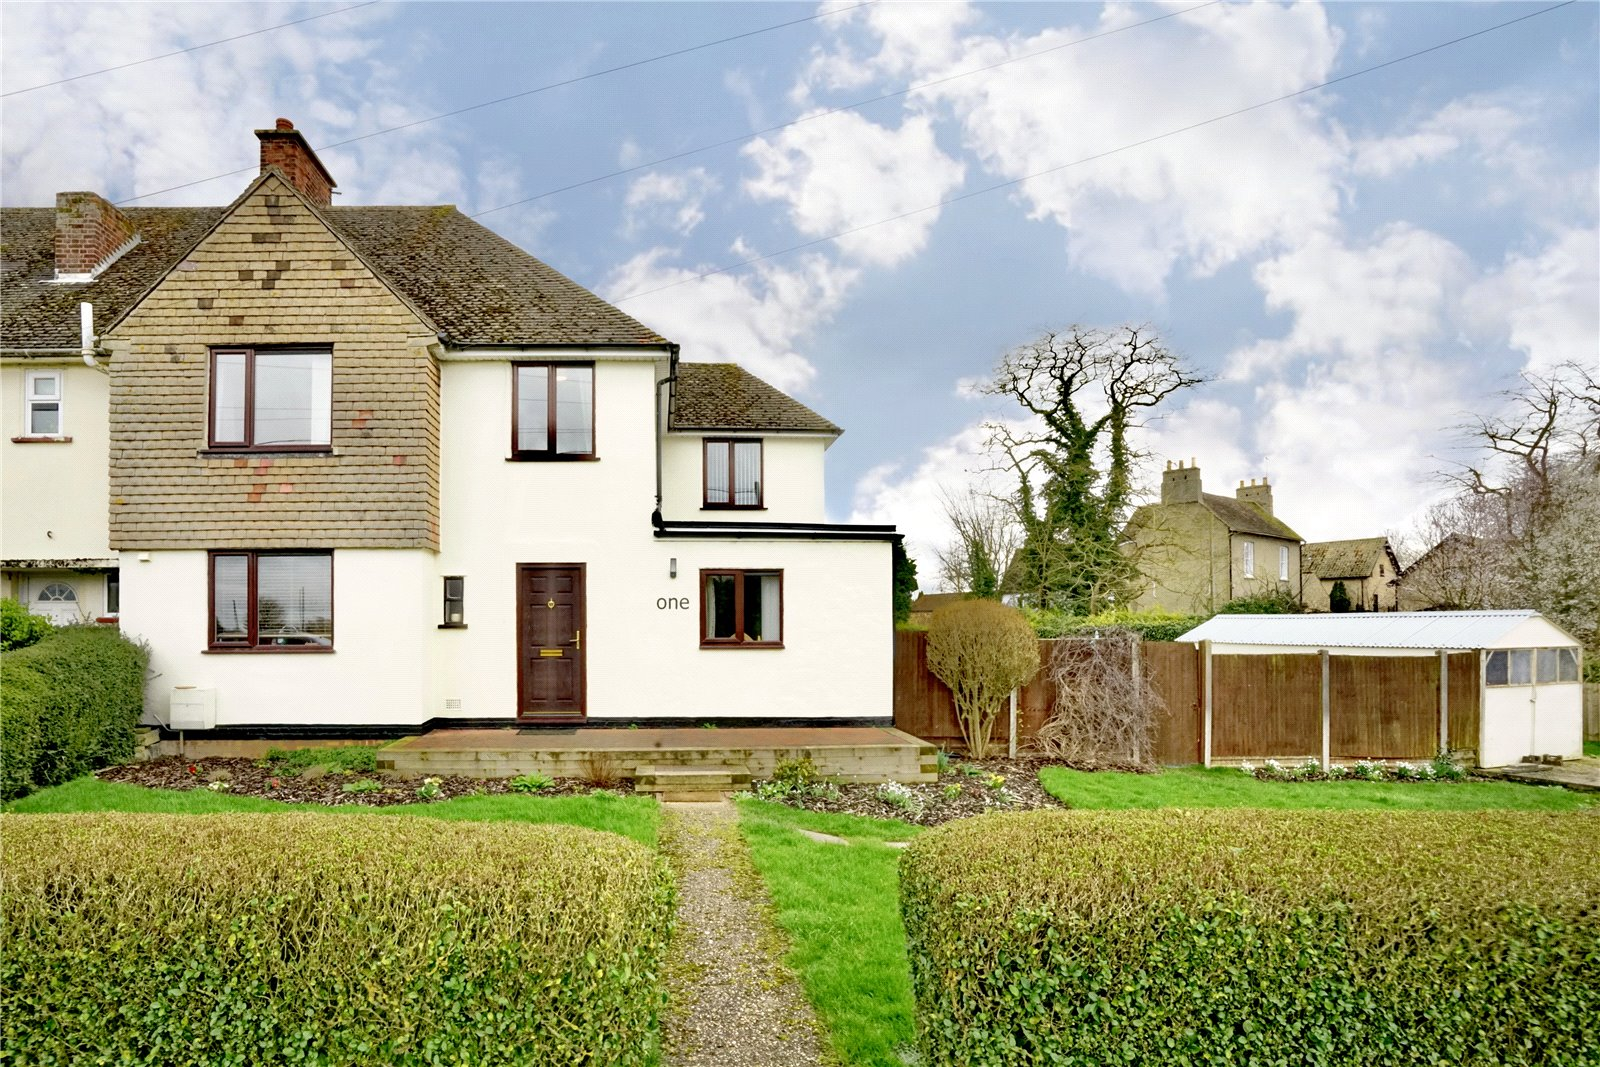 4 bed house for sale in High Street, Great Paxton, PE19